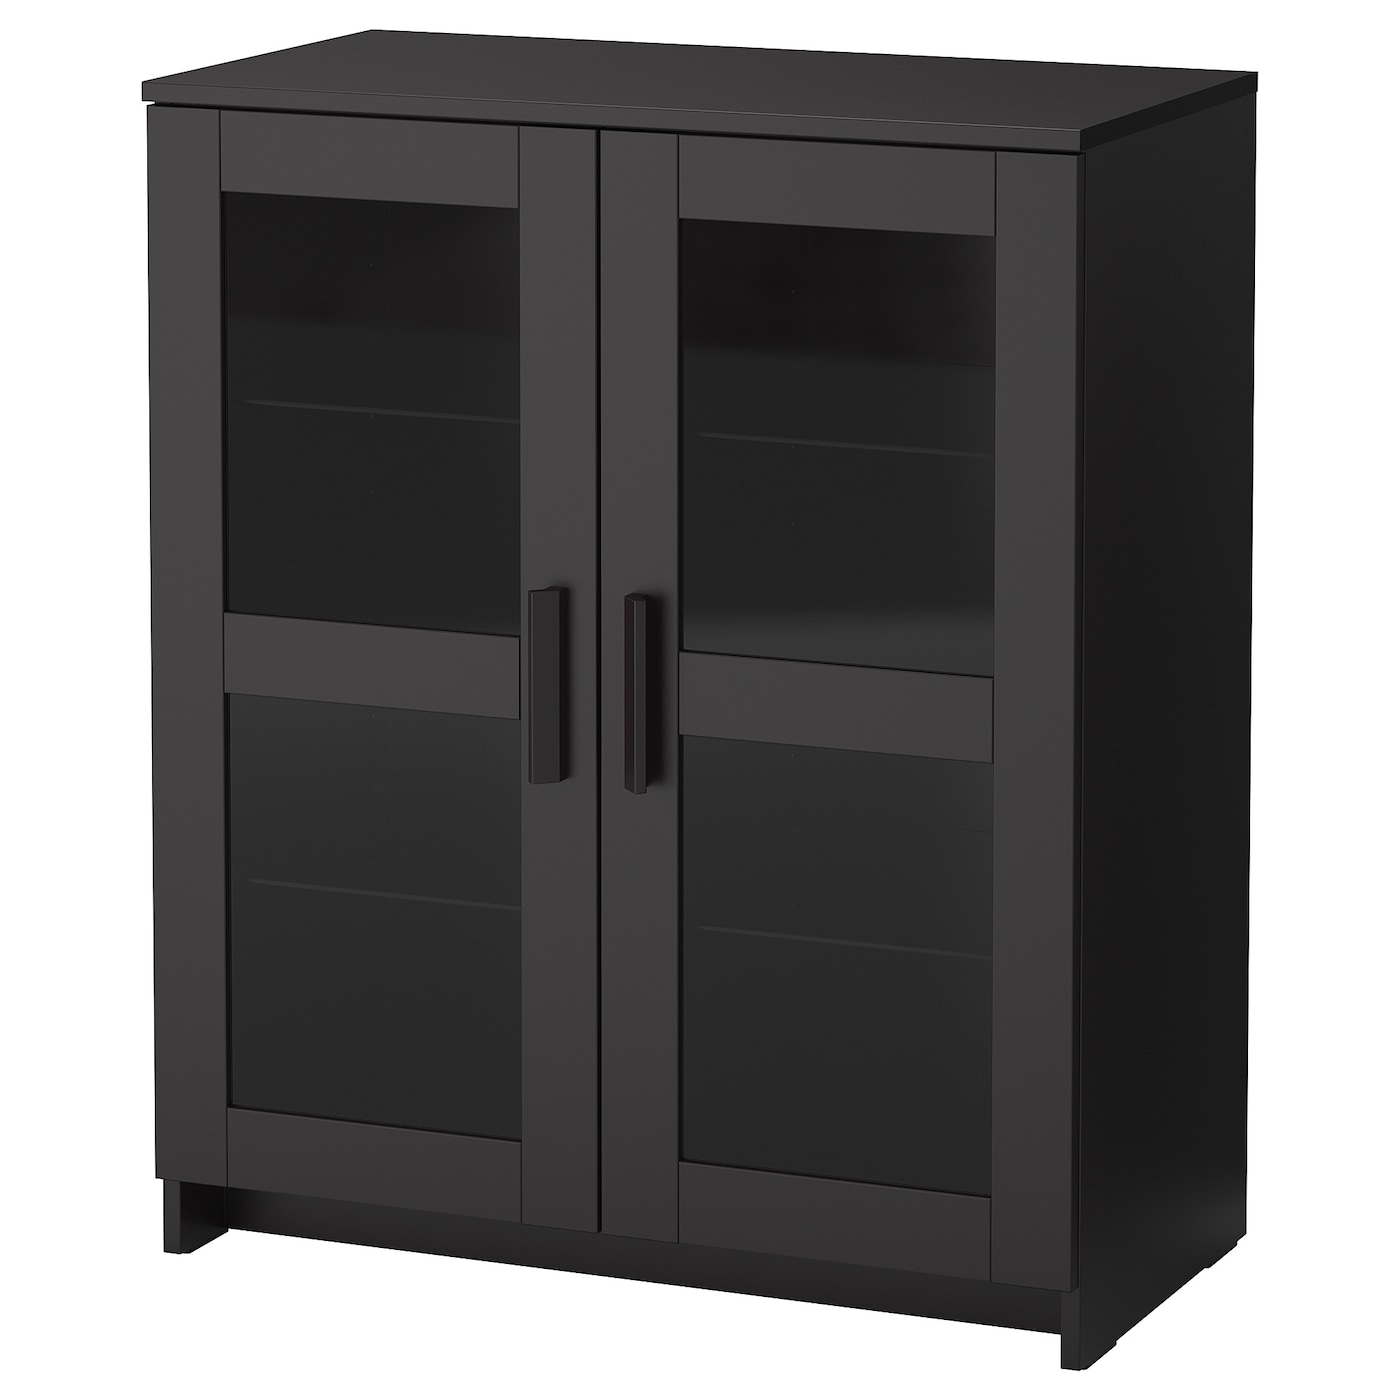 brimnes cabinet with doors glass black 78 x 95 cm ikea. Black Bedroom Furniture Sets. Home Design Ideas